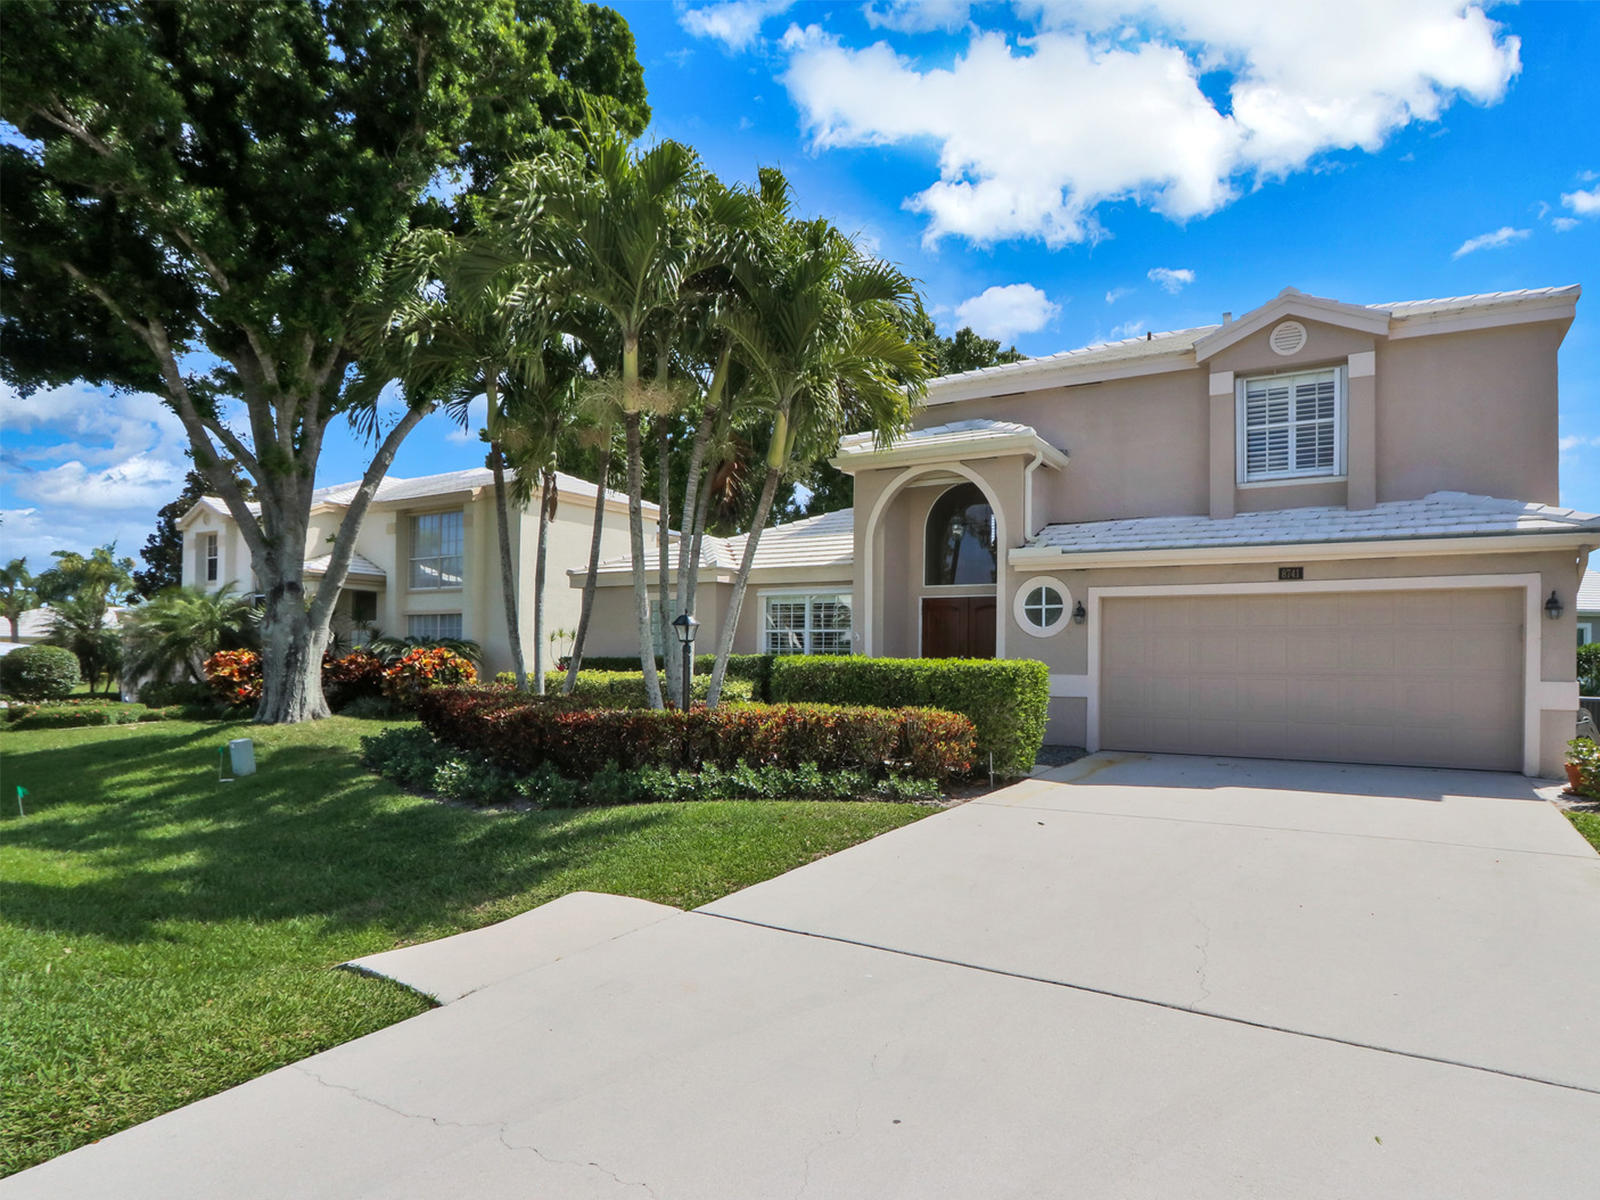 New Home for sale at 8741 Riverfront Terrace in Tequesta